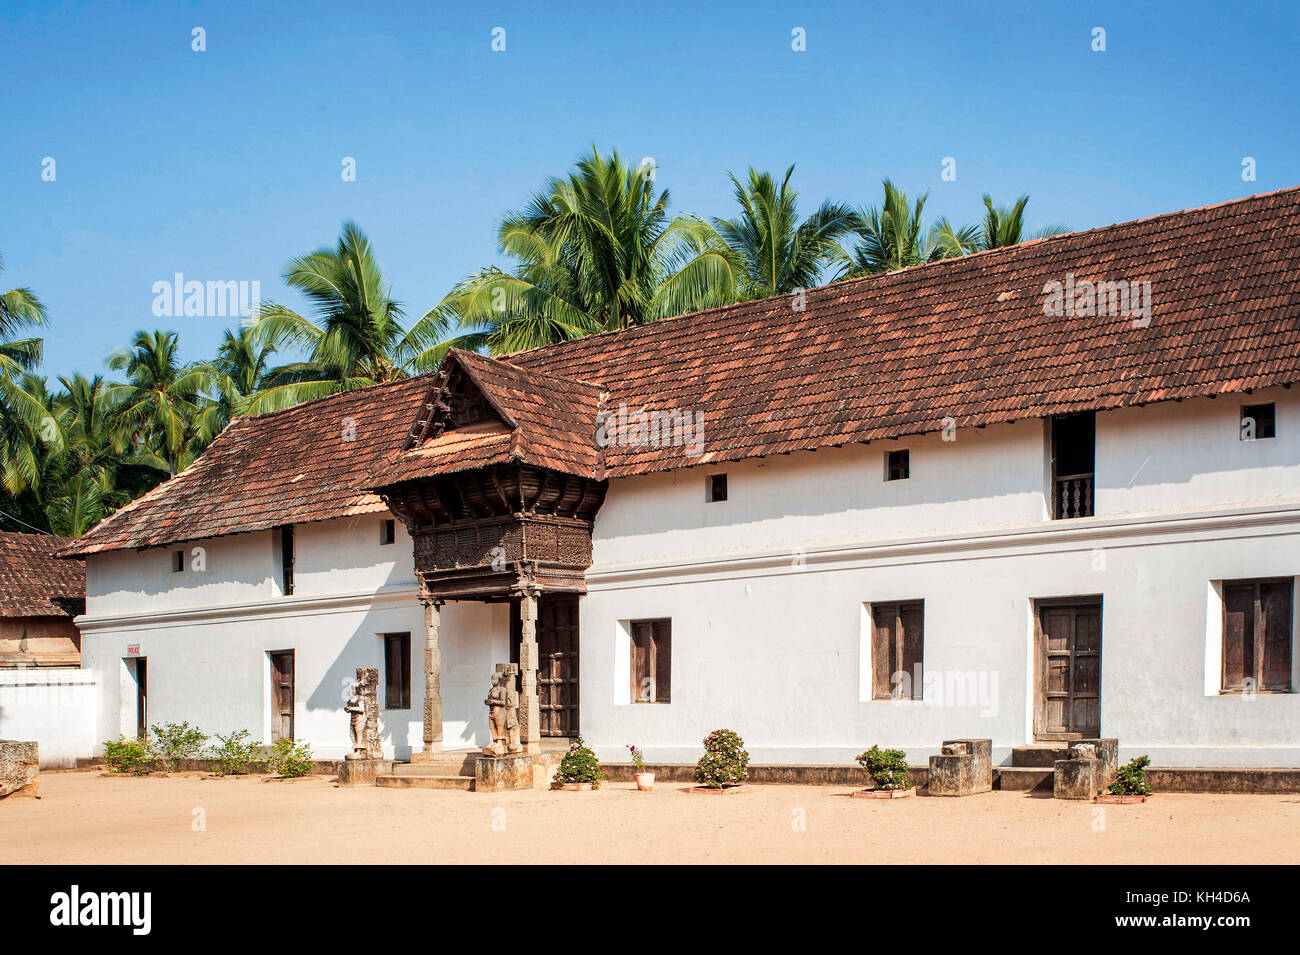 travancore kings ii wooden council chambers, Tamil nadu, India, Asia - Stock Image